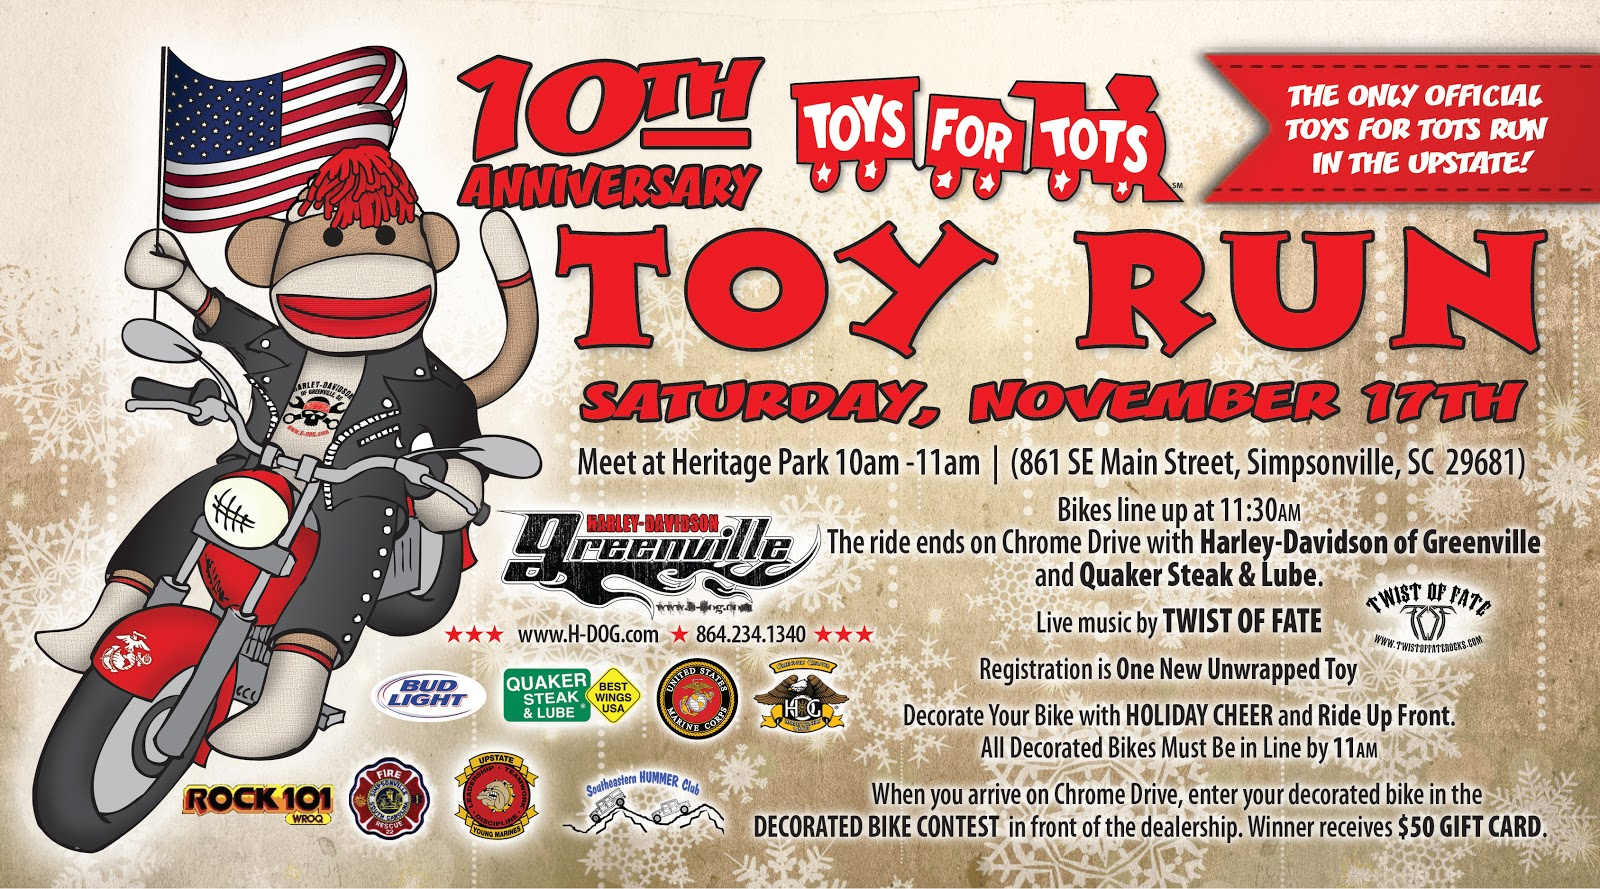 2012 Toys For Tots Logo : Motorcycle riders update november